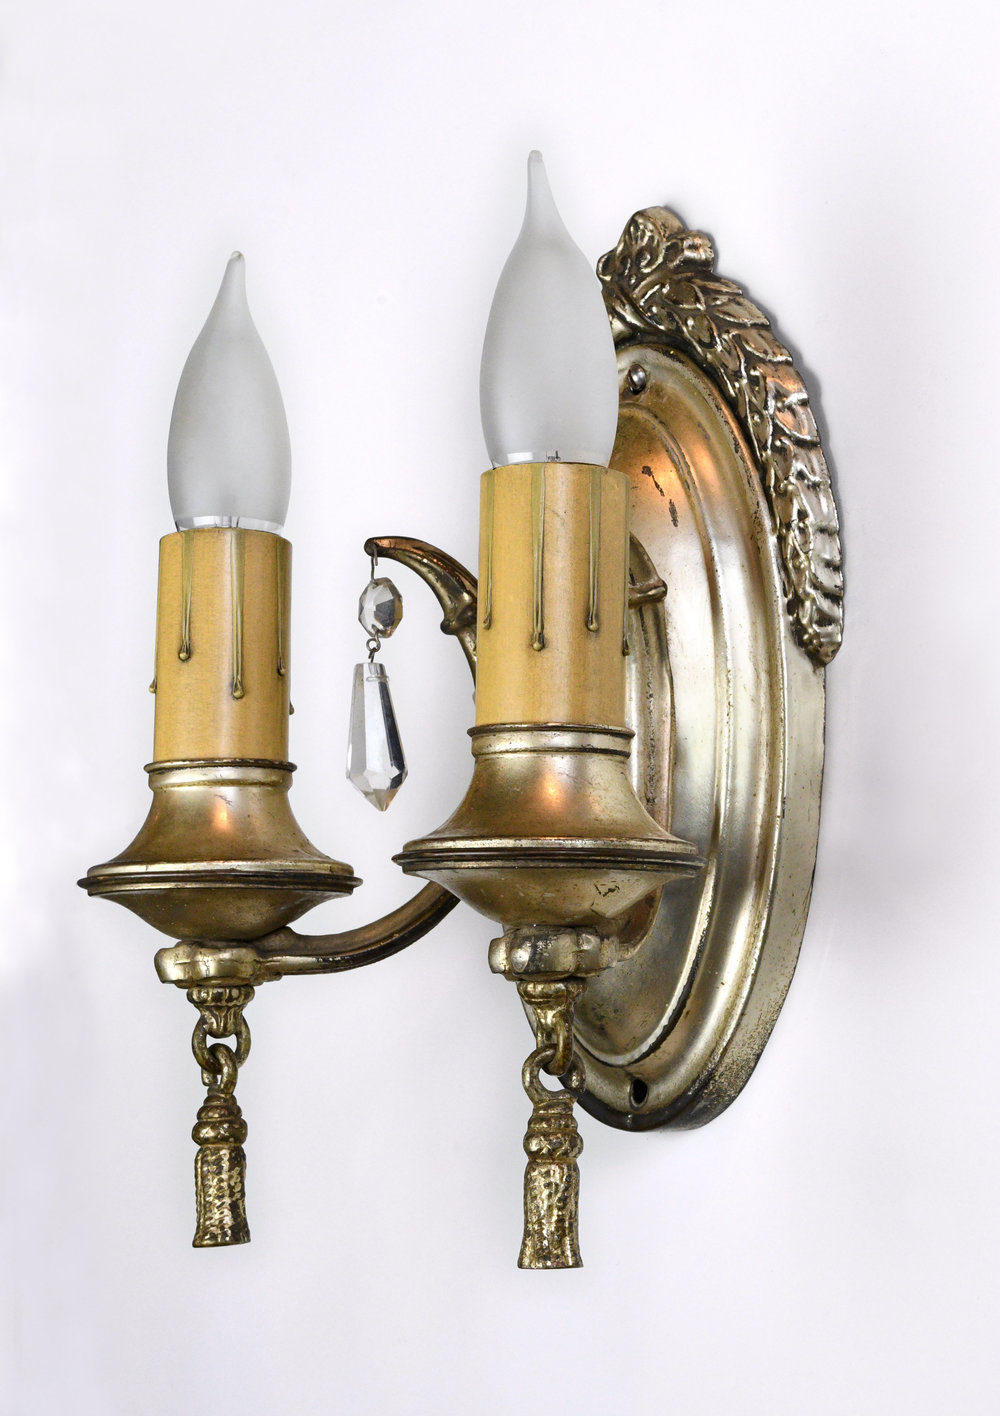 45047-silver-sconce-with-crystals-angle-view.jpg